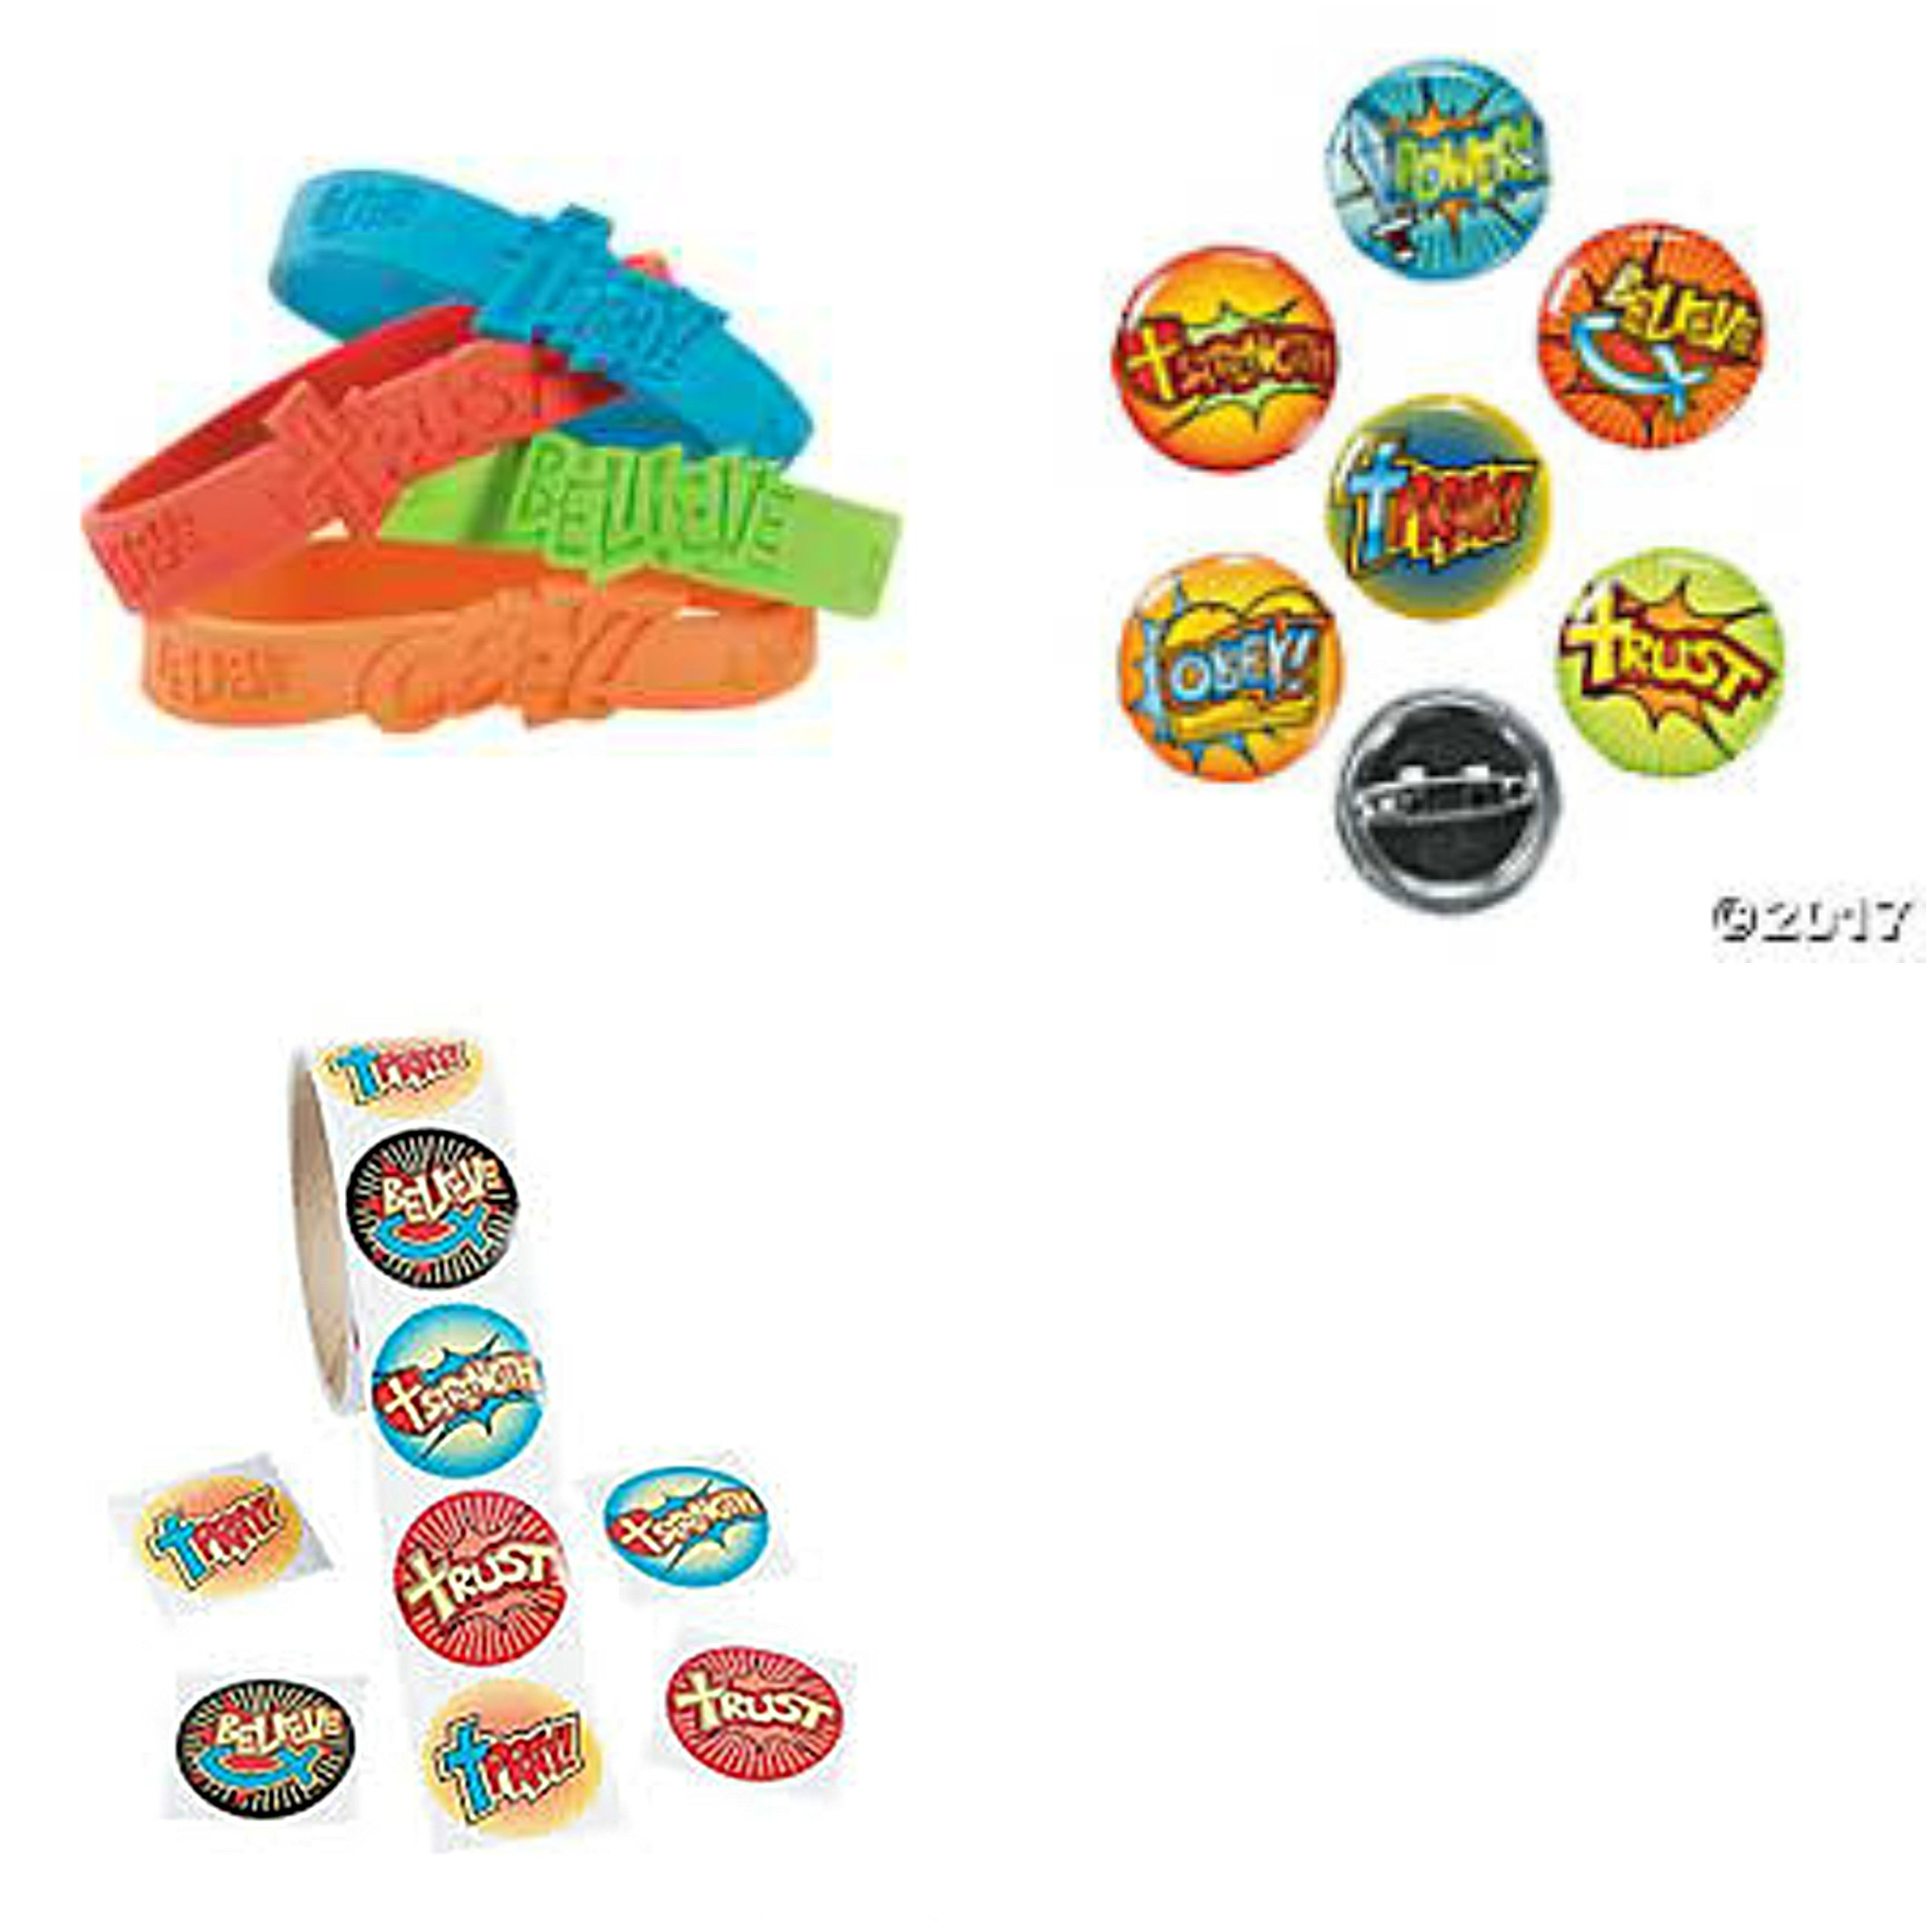 VBS Religious Christian 24 Rubber Bracelets 48 Mini Buttons Roll of 100 Stickers